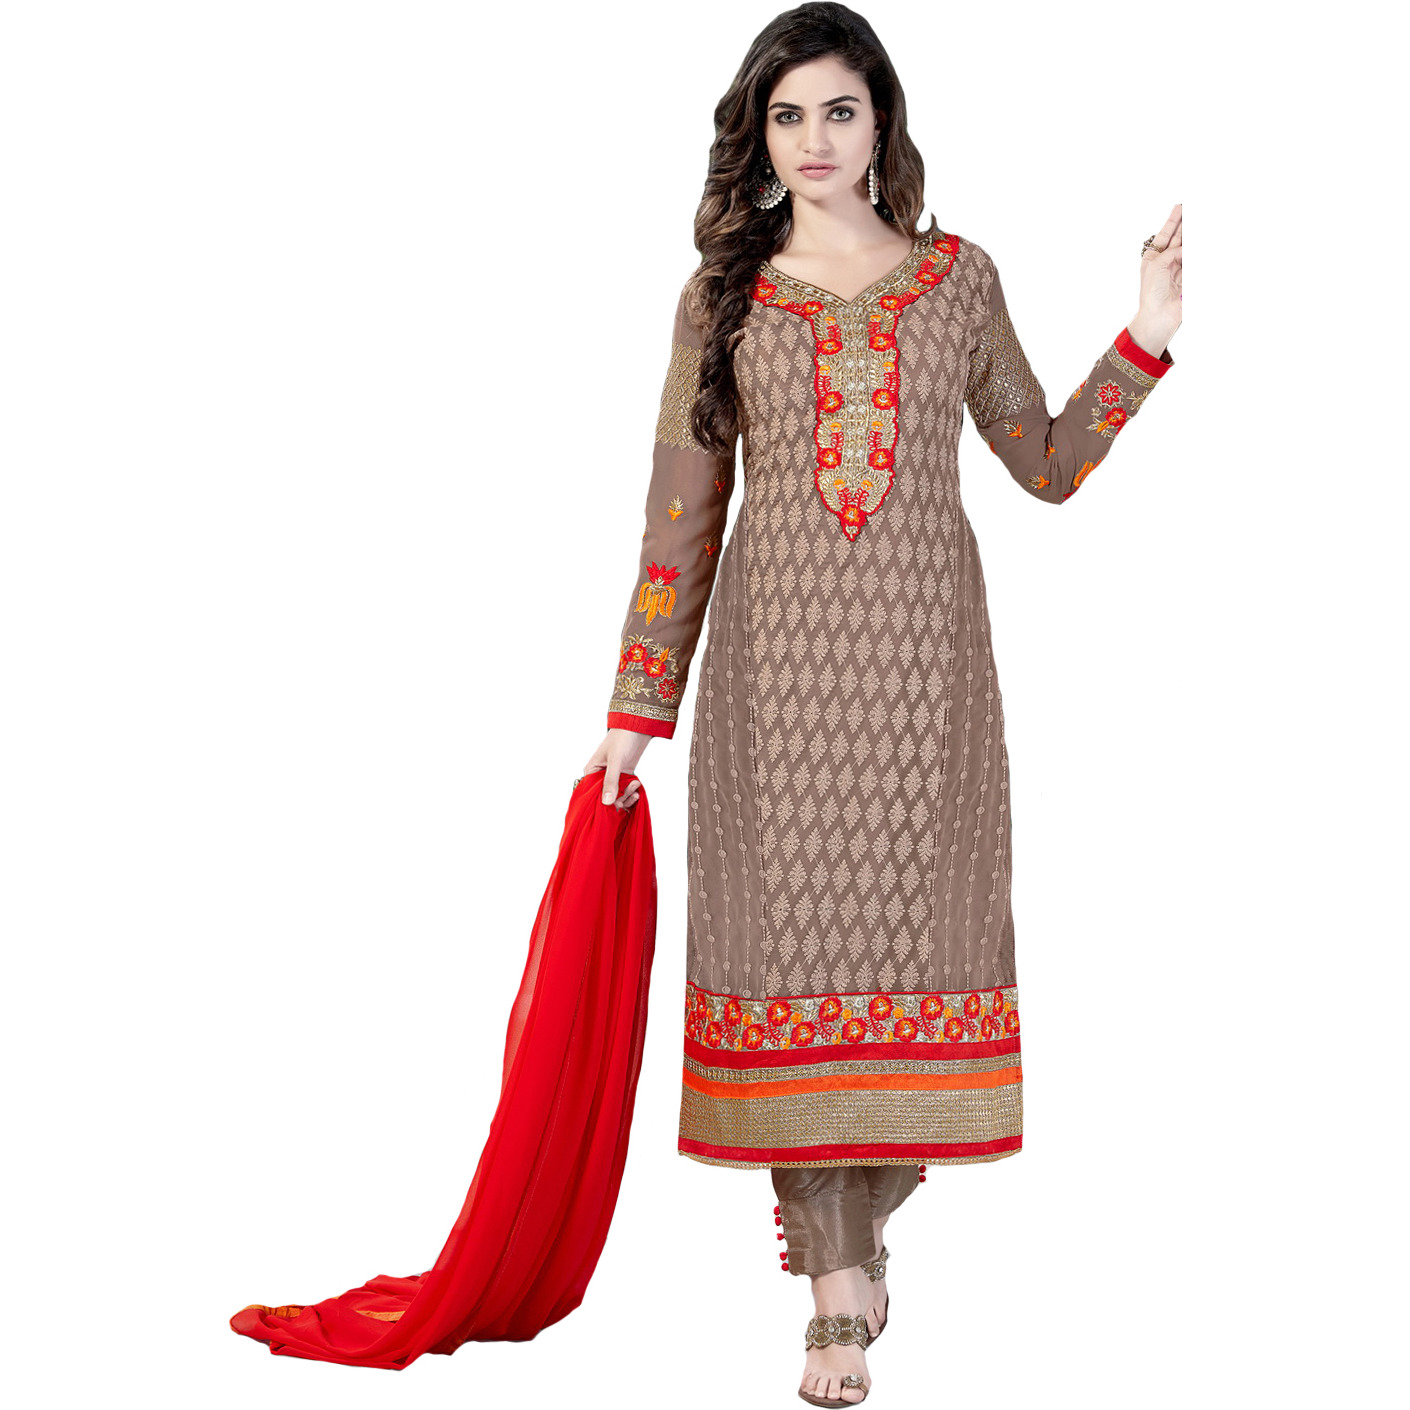 Warm-Taupe Self Embroidered Long Parallel Salwar Suit with Floral Patch on Neck and Border